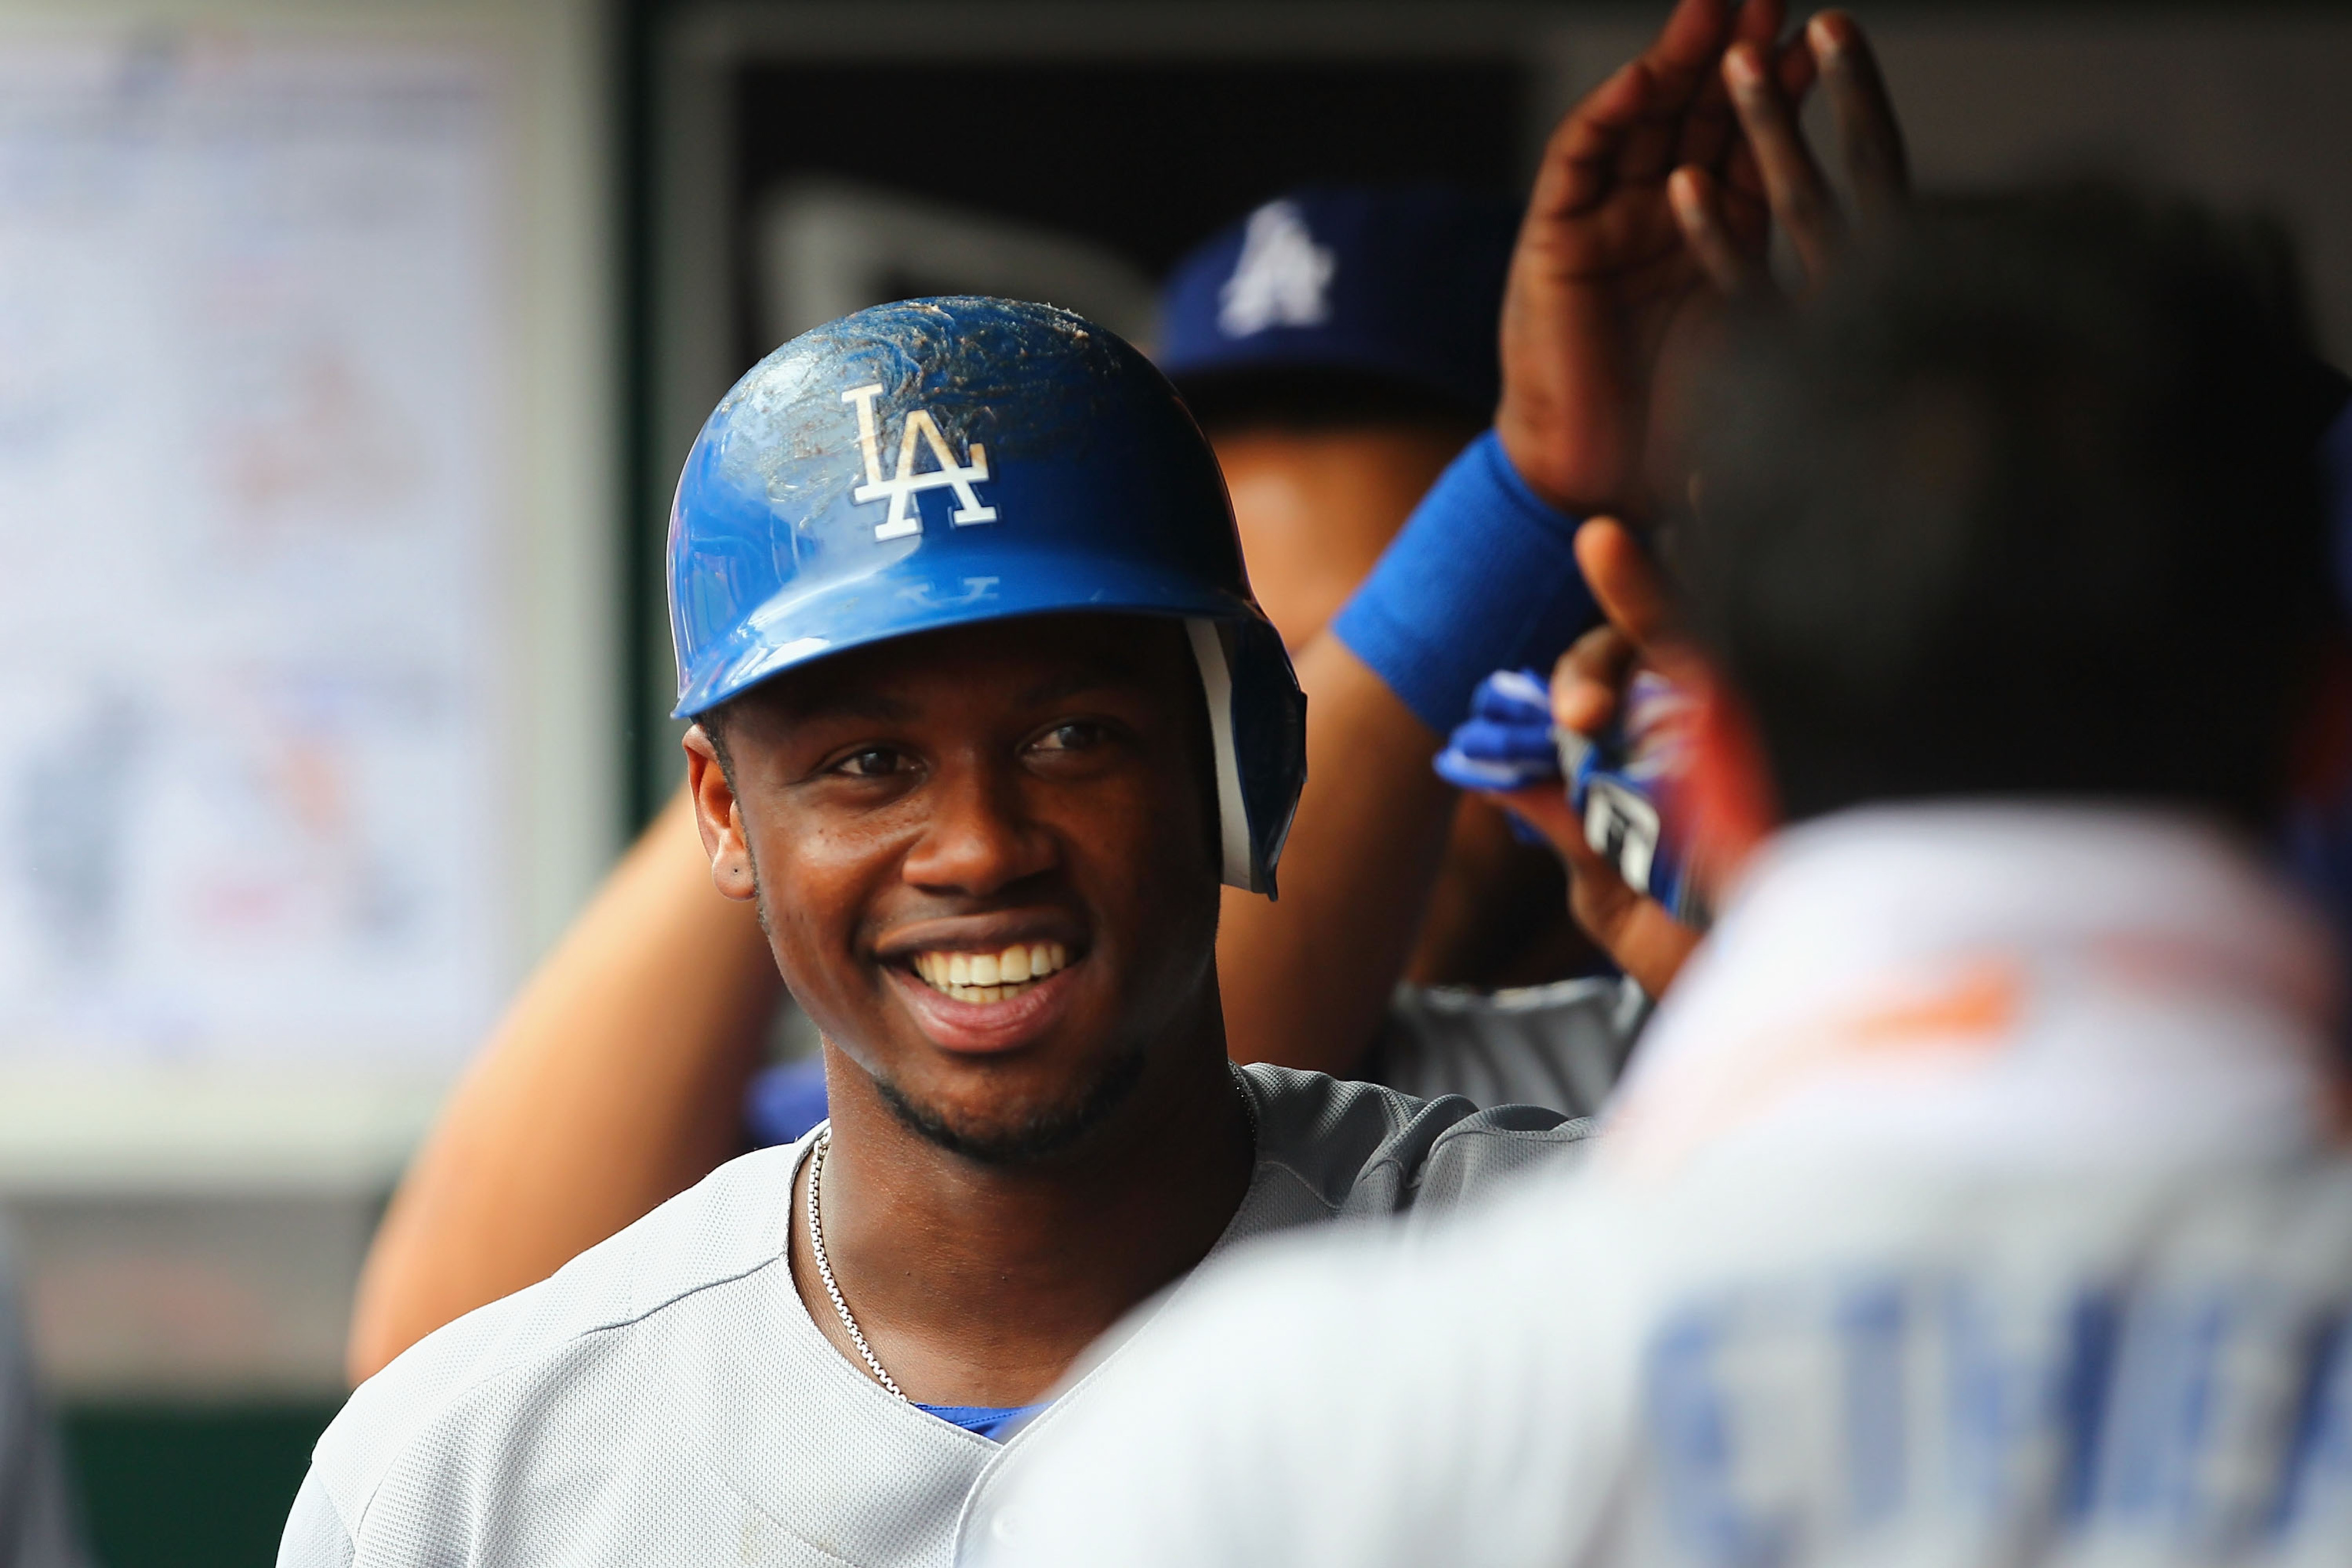 Hanley Ramirez has been all smiles since joining the Dodgers. Will that translate into wins this weekend in San Francisco?